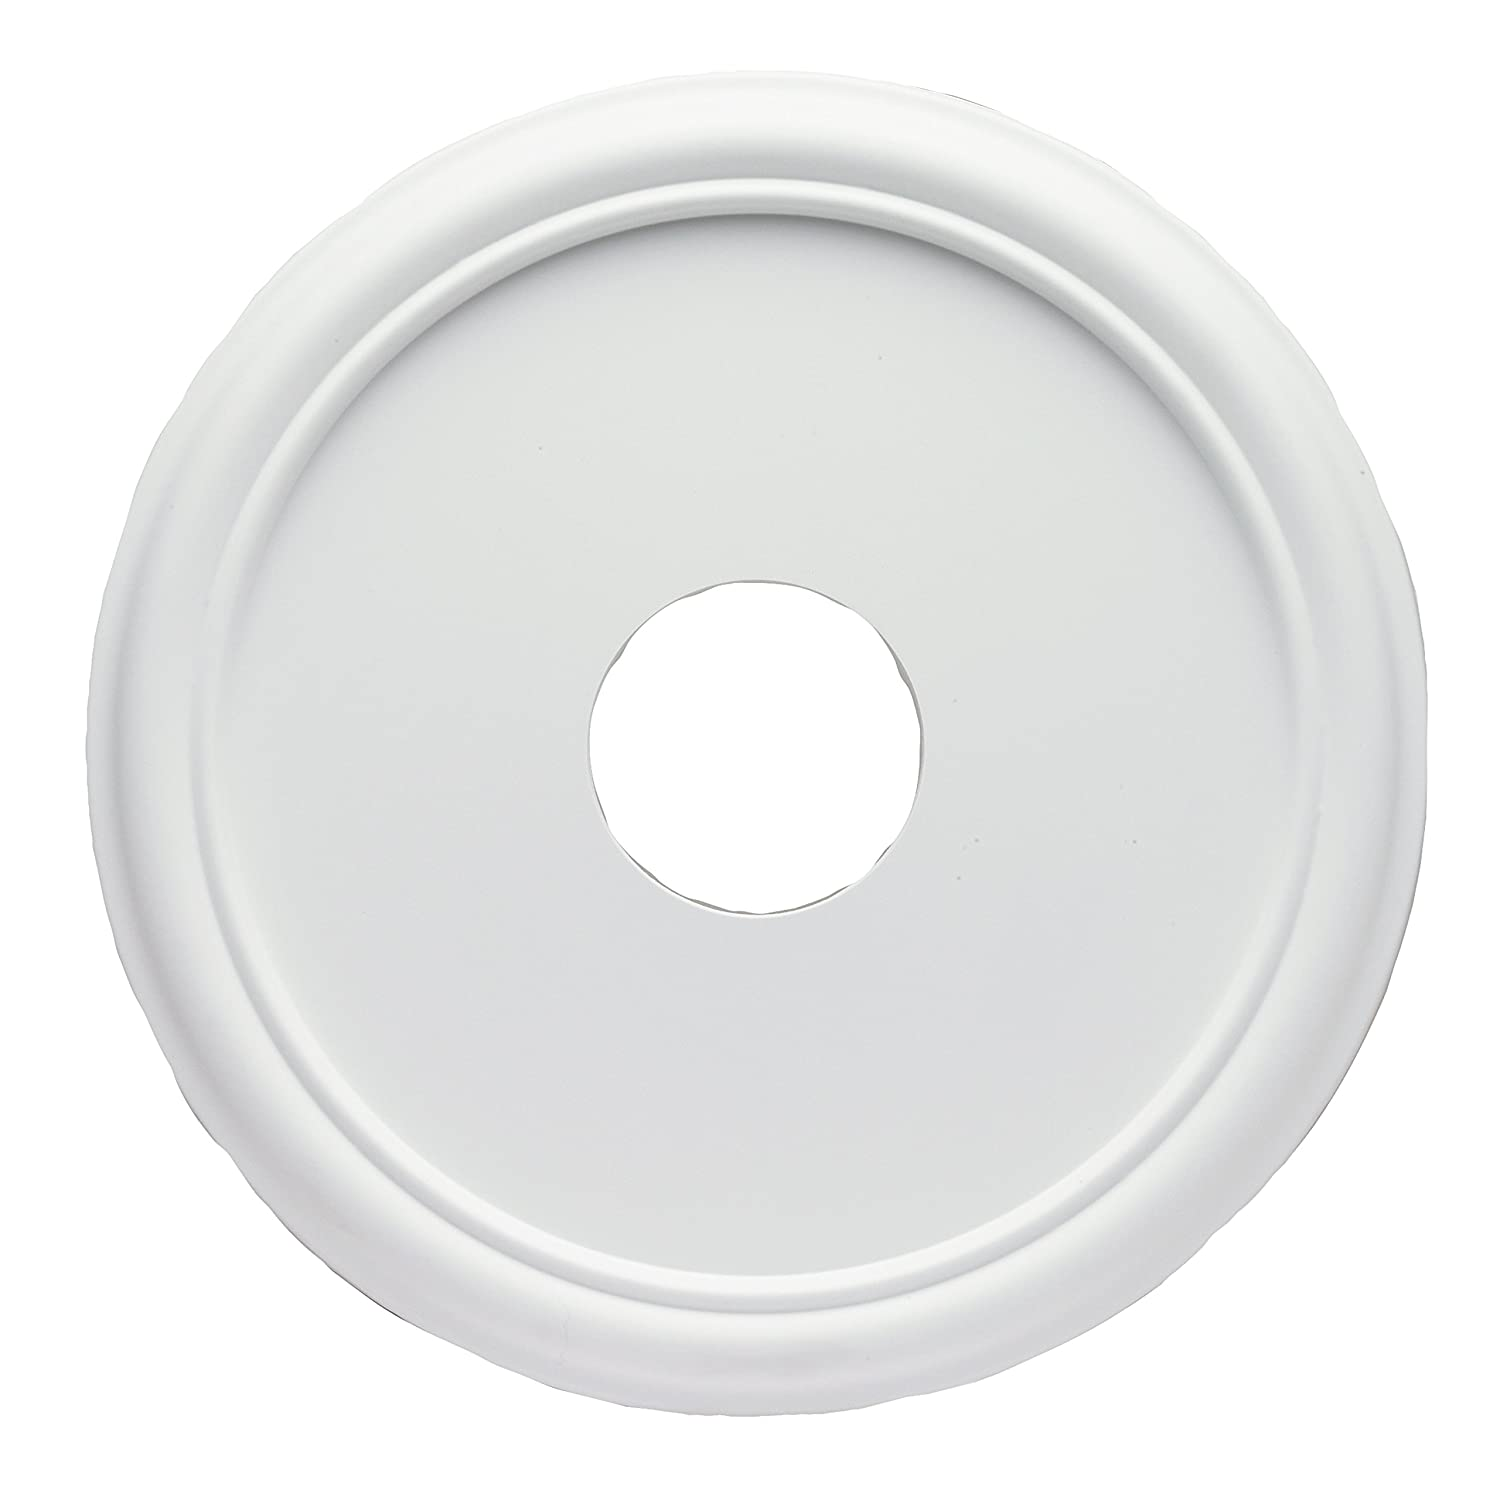 Home lighting ceiling medallions amazon lighting ceiling westinghouse 7773200 16 inch smooth white finish ceiling medallion arubaitofo Images